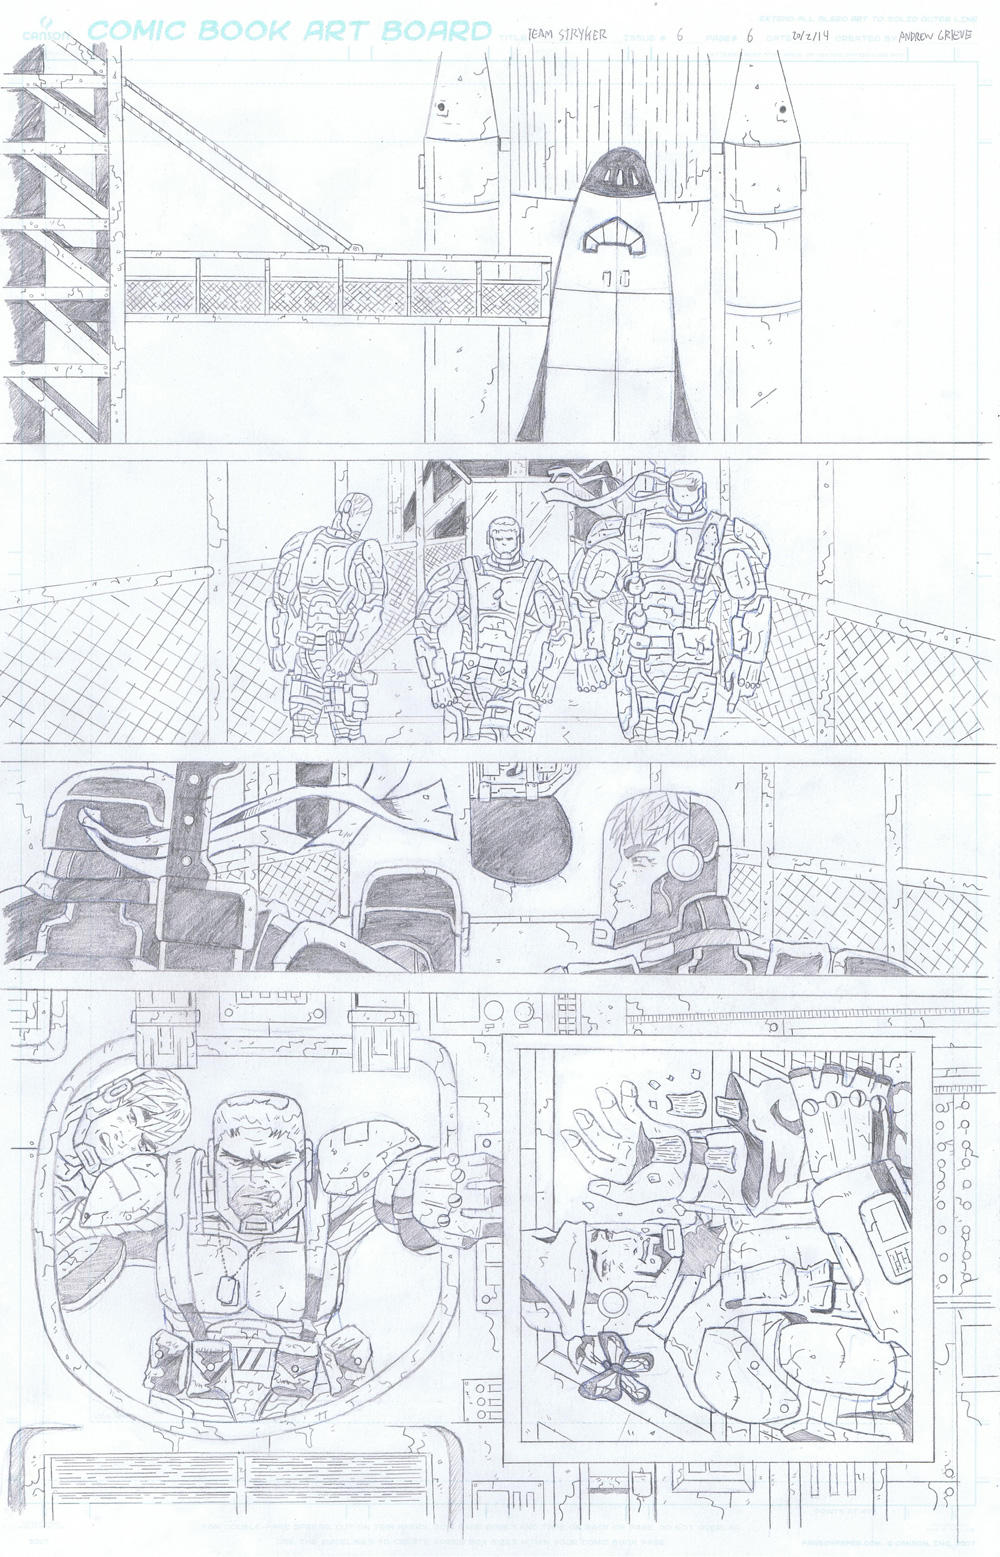 MISSION 006: PAGE 06 PENCIL